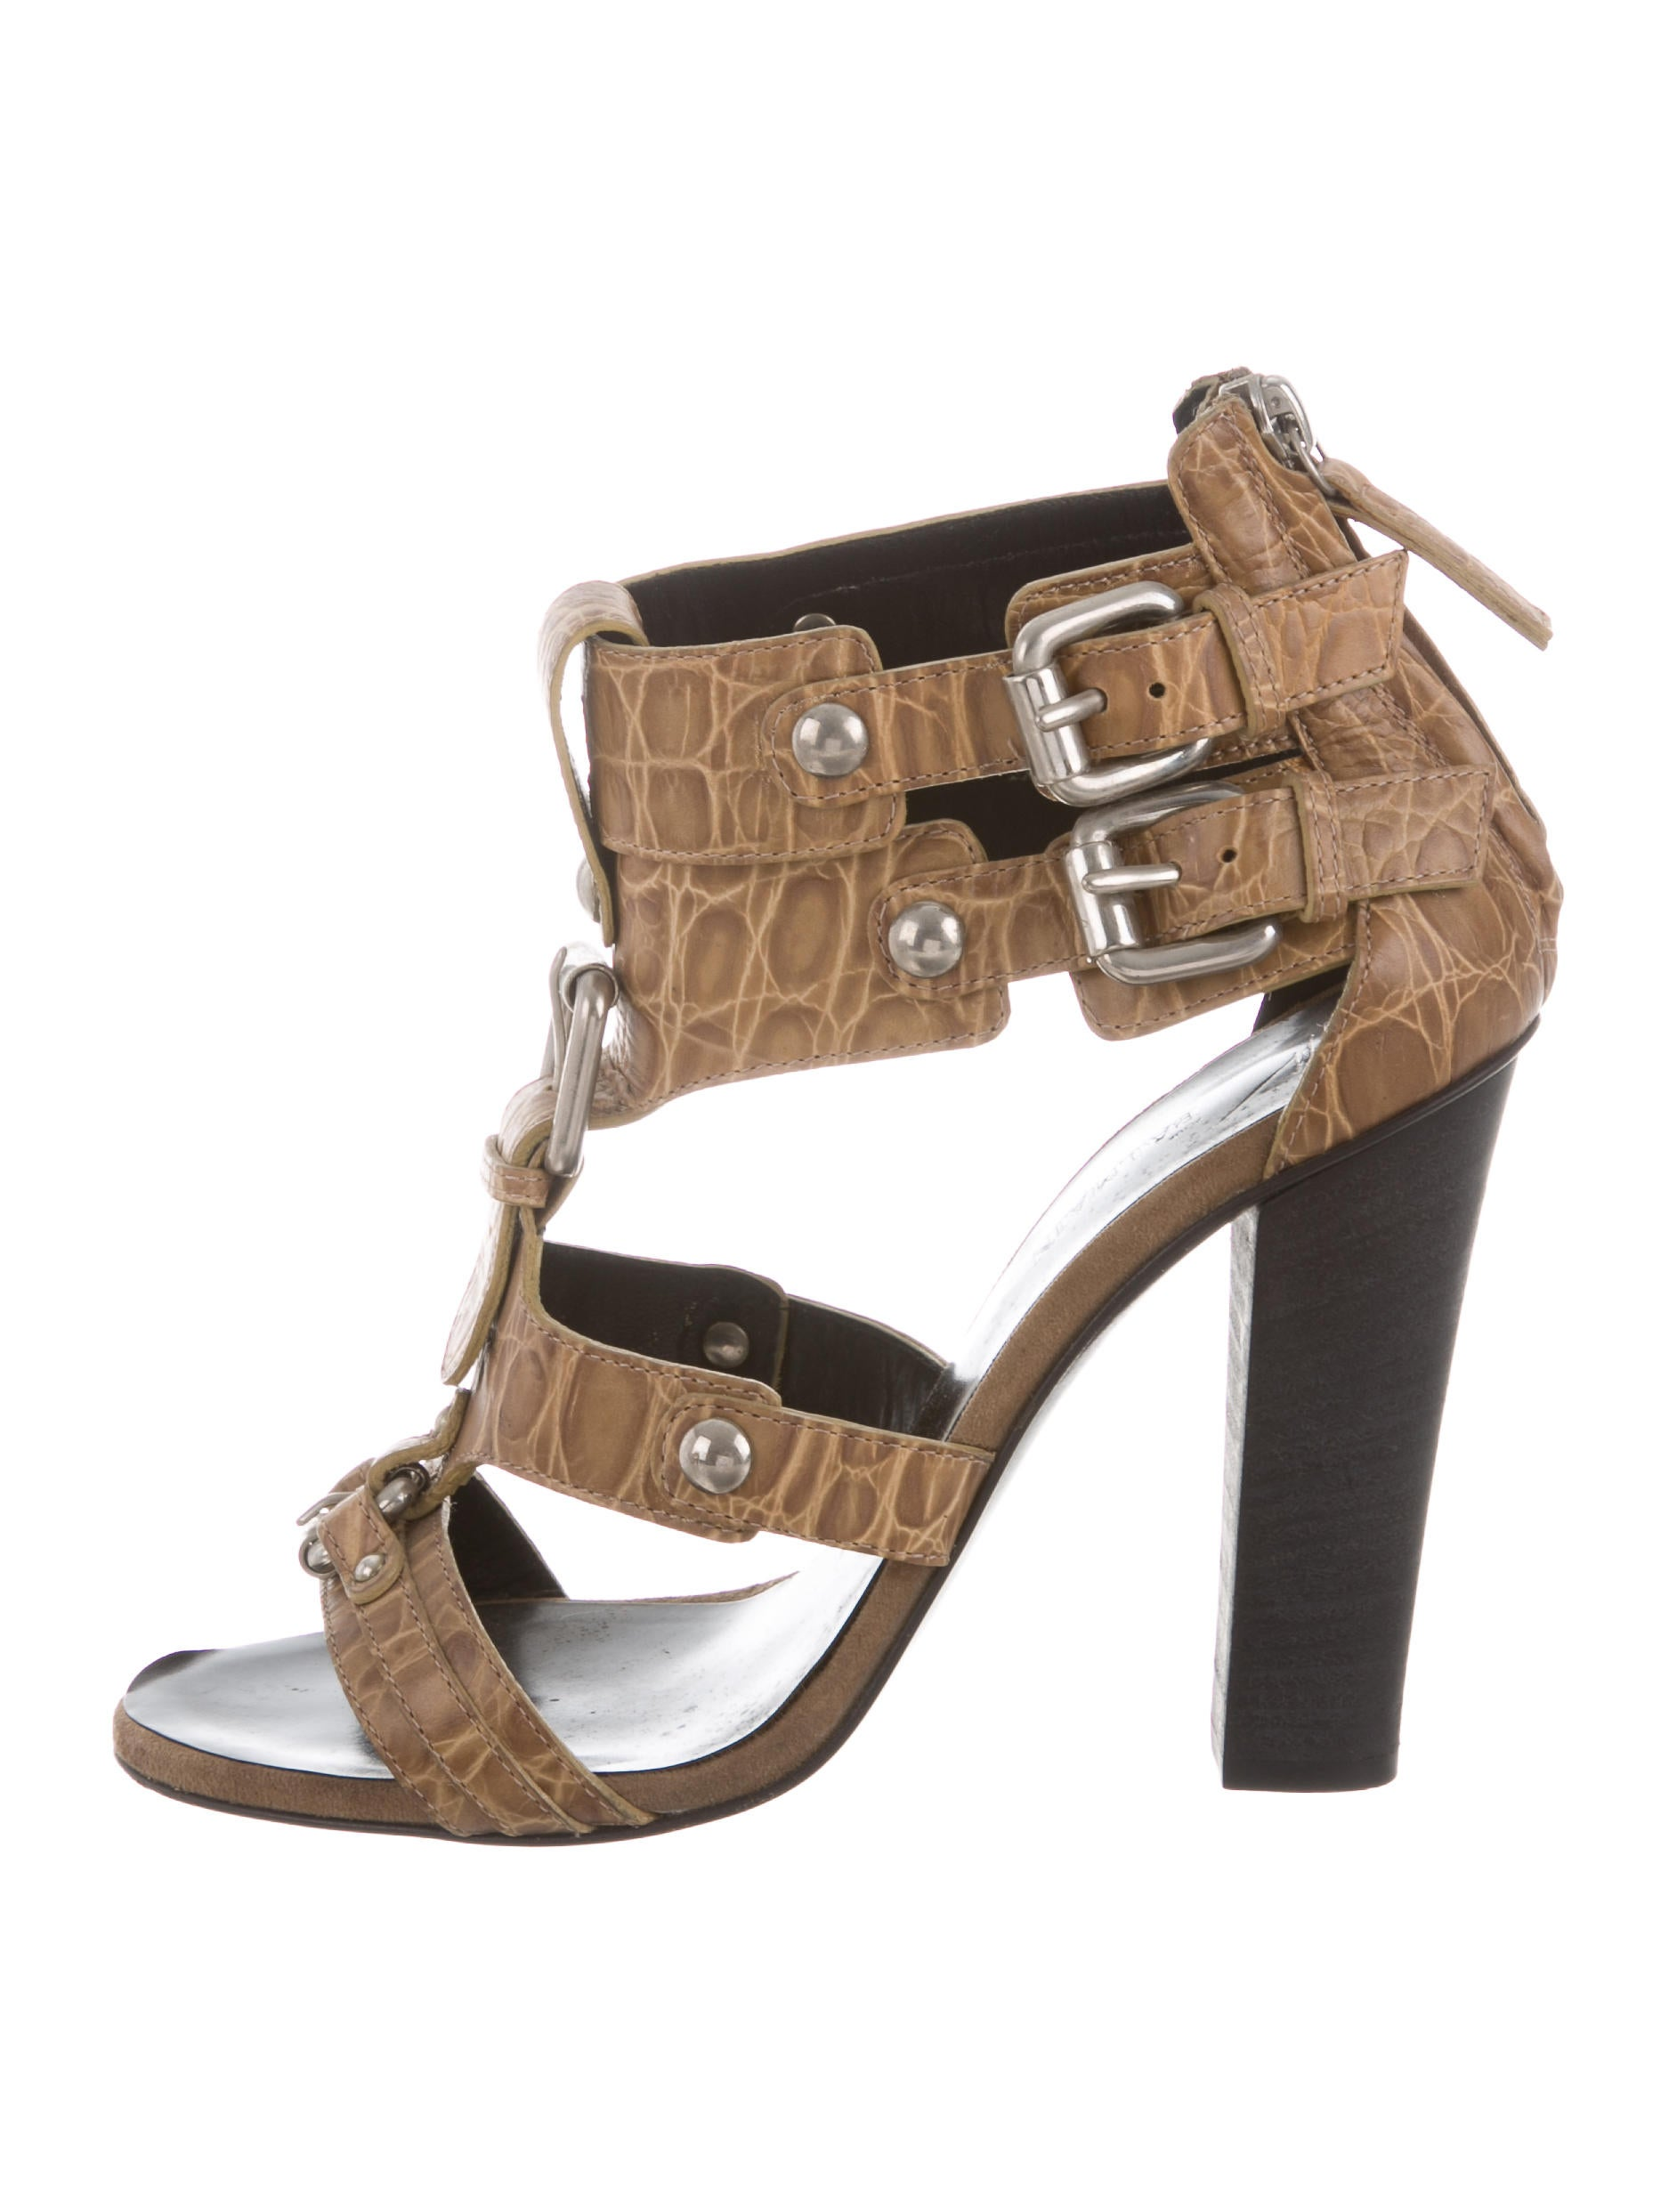 footlocker pictures sale online Giuseppe Zanotti x Balmain Buckle-Embellished Cage Sandals pay with visa really outlet 2015 tJLcyBL